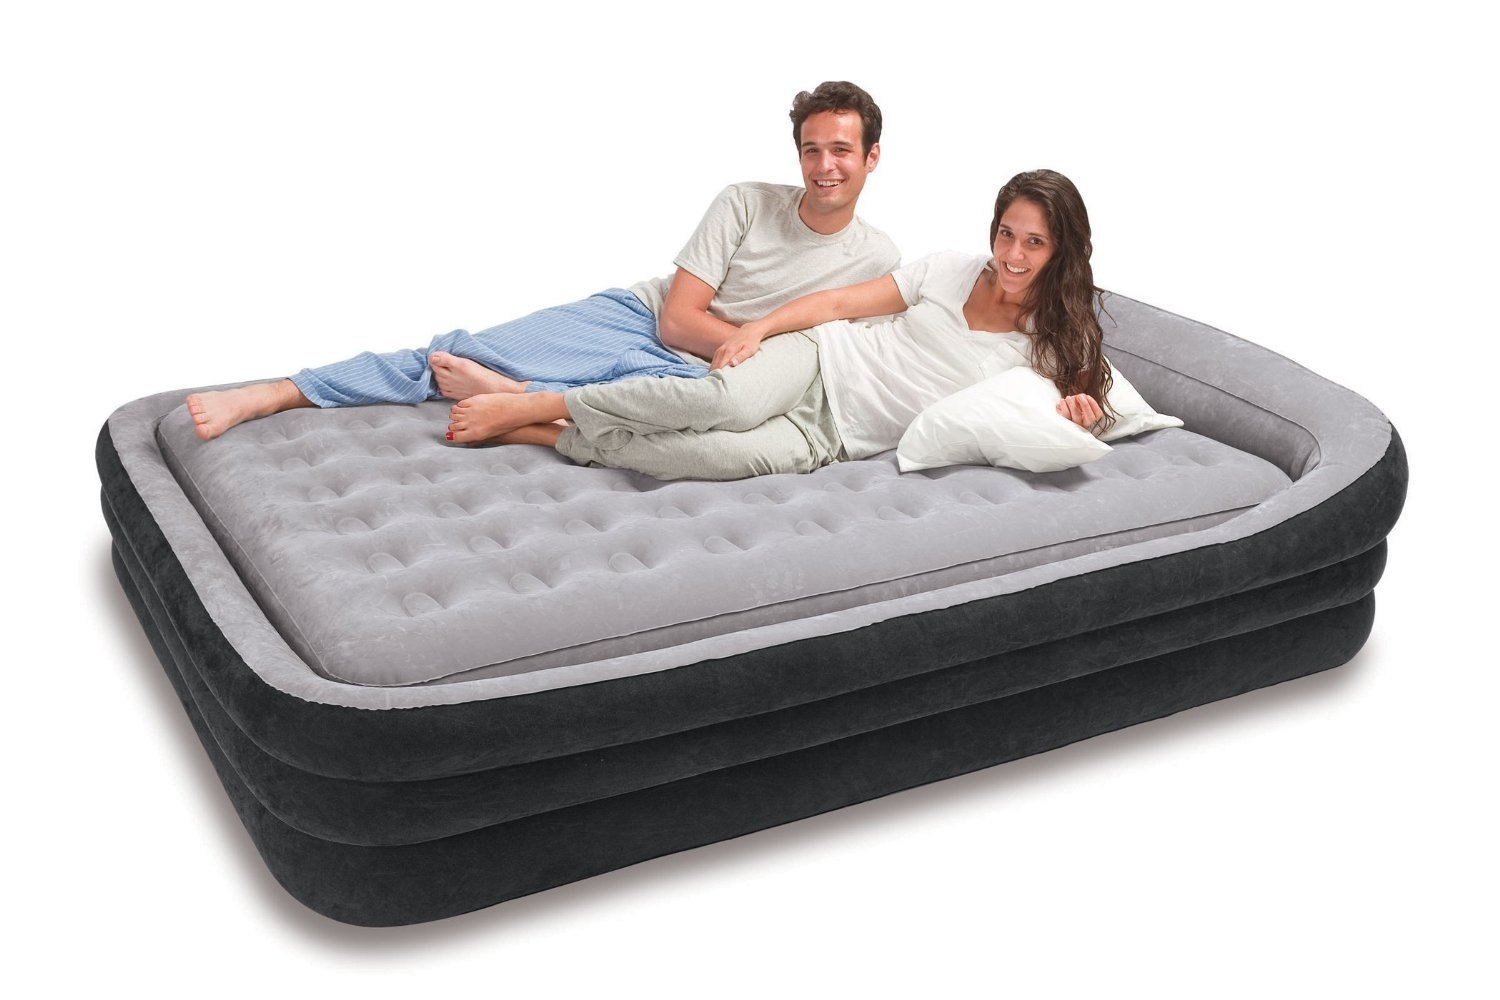 Double Blow Up Bed On Frame